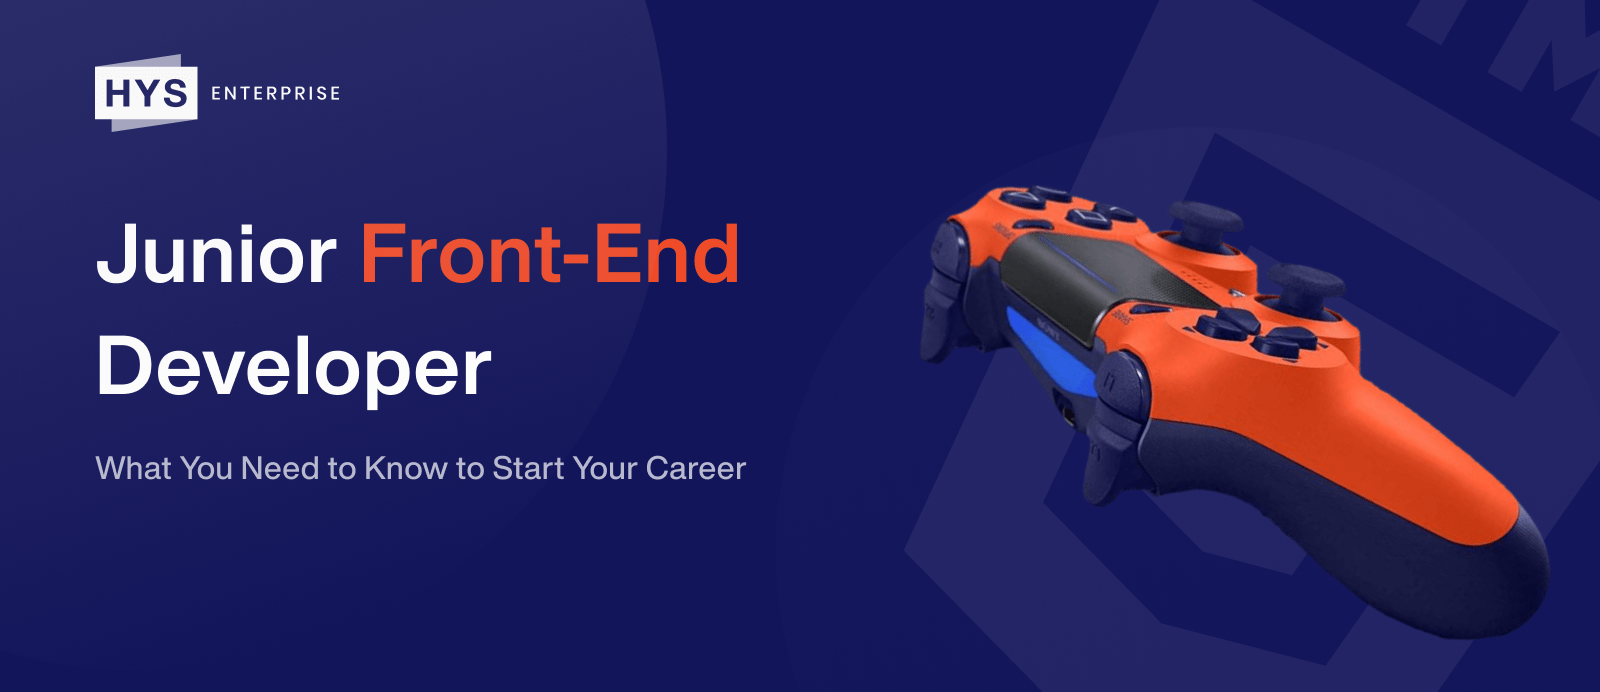 Junior Front-End Developer: What You Need to Know to Start Your Career